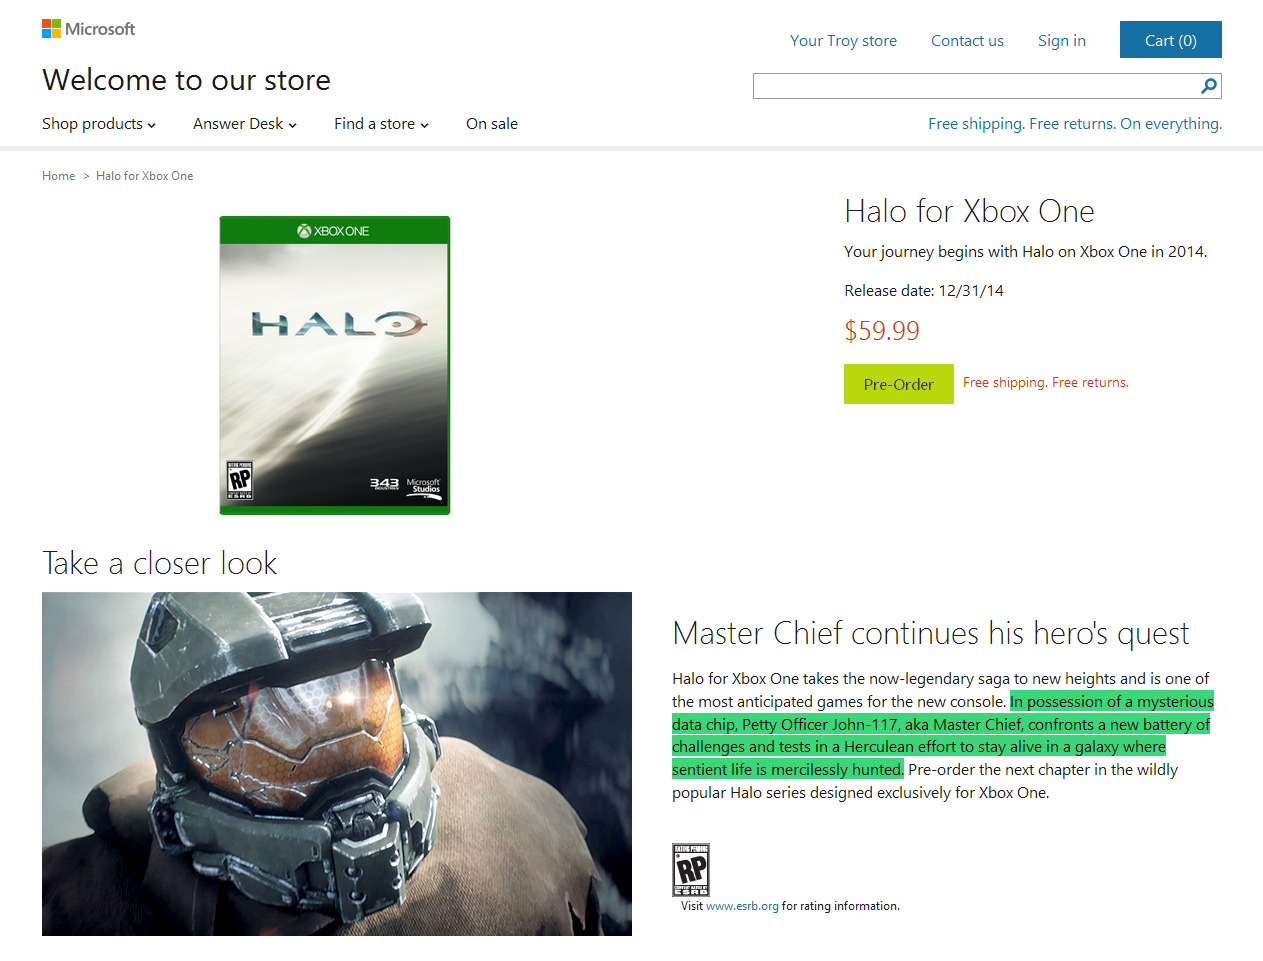 1377827233-halo-xbox-one-story-overview